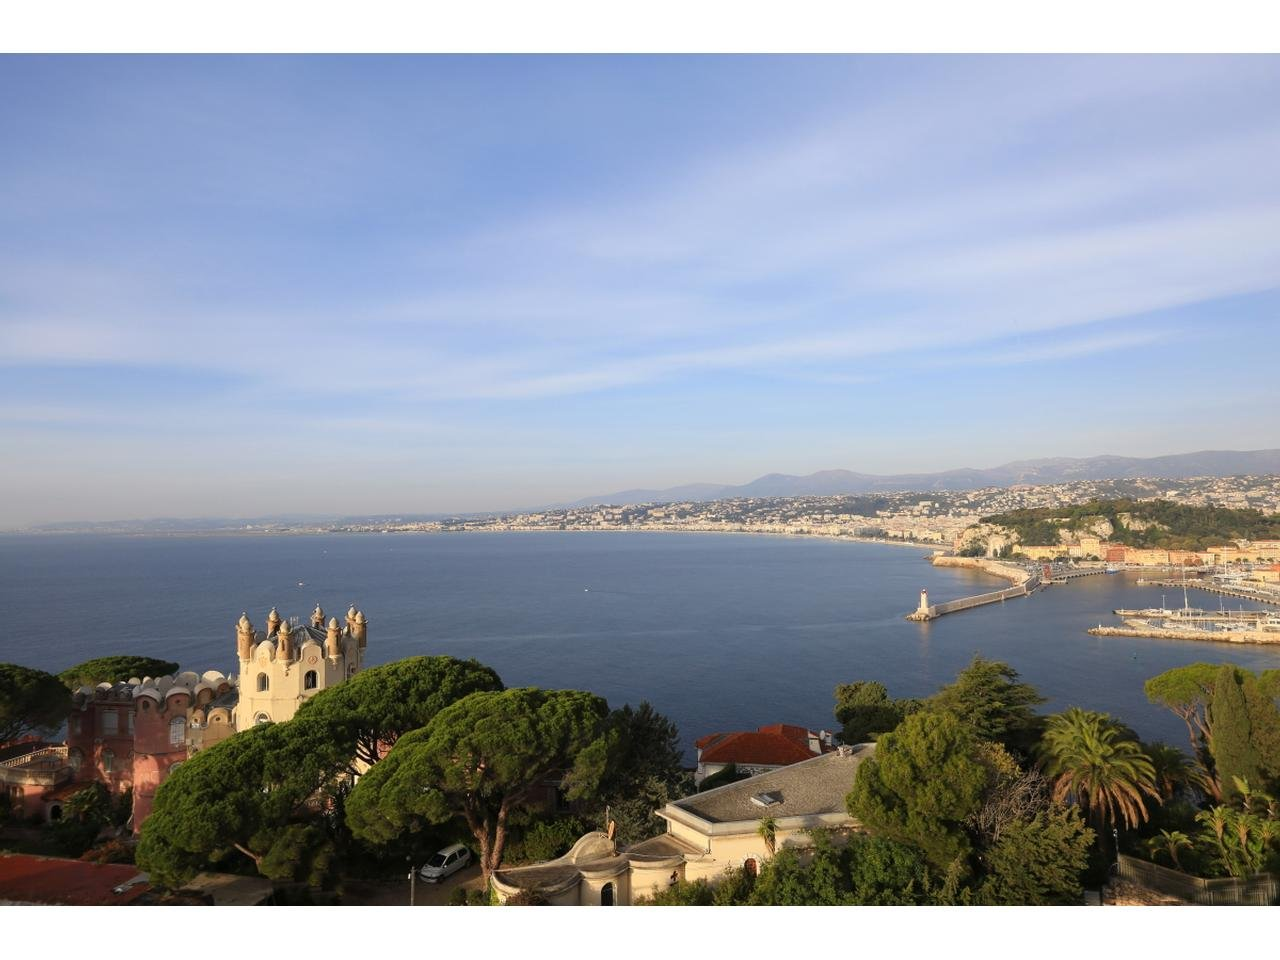 Appartement  5 Rooms 125m2  for sale  2 580 000 €